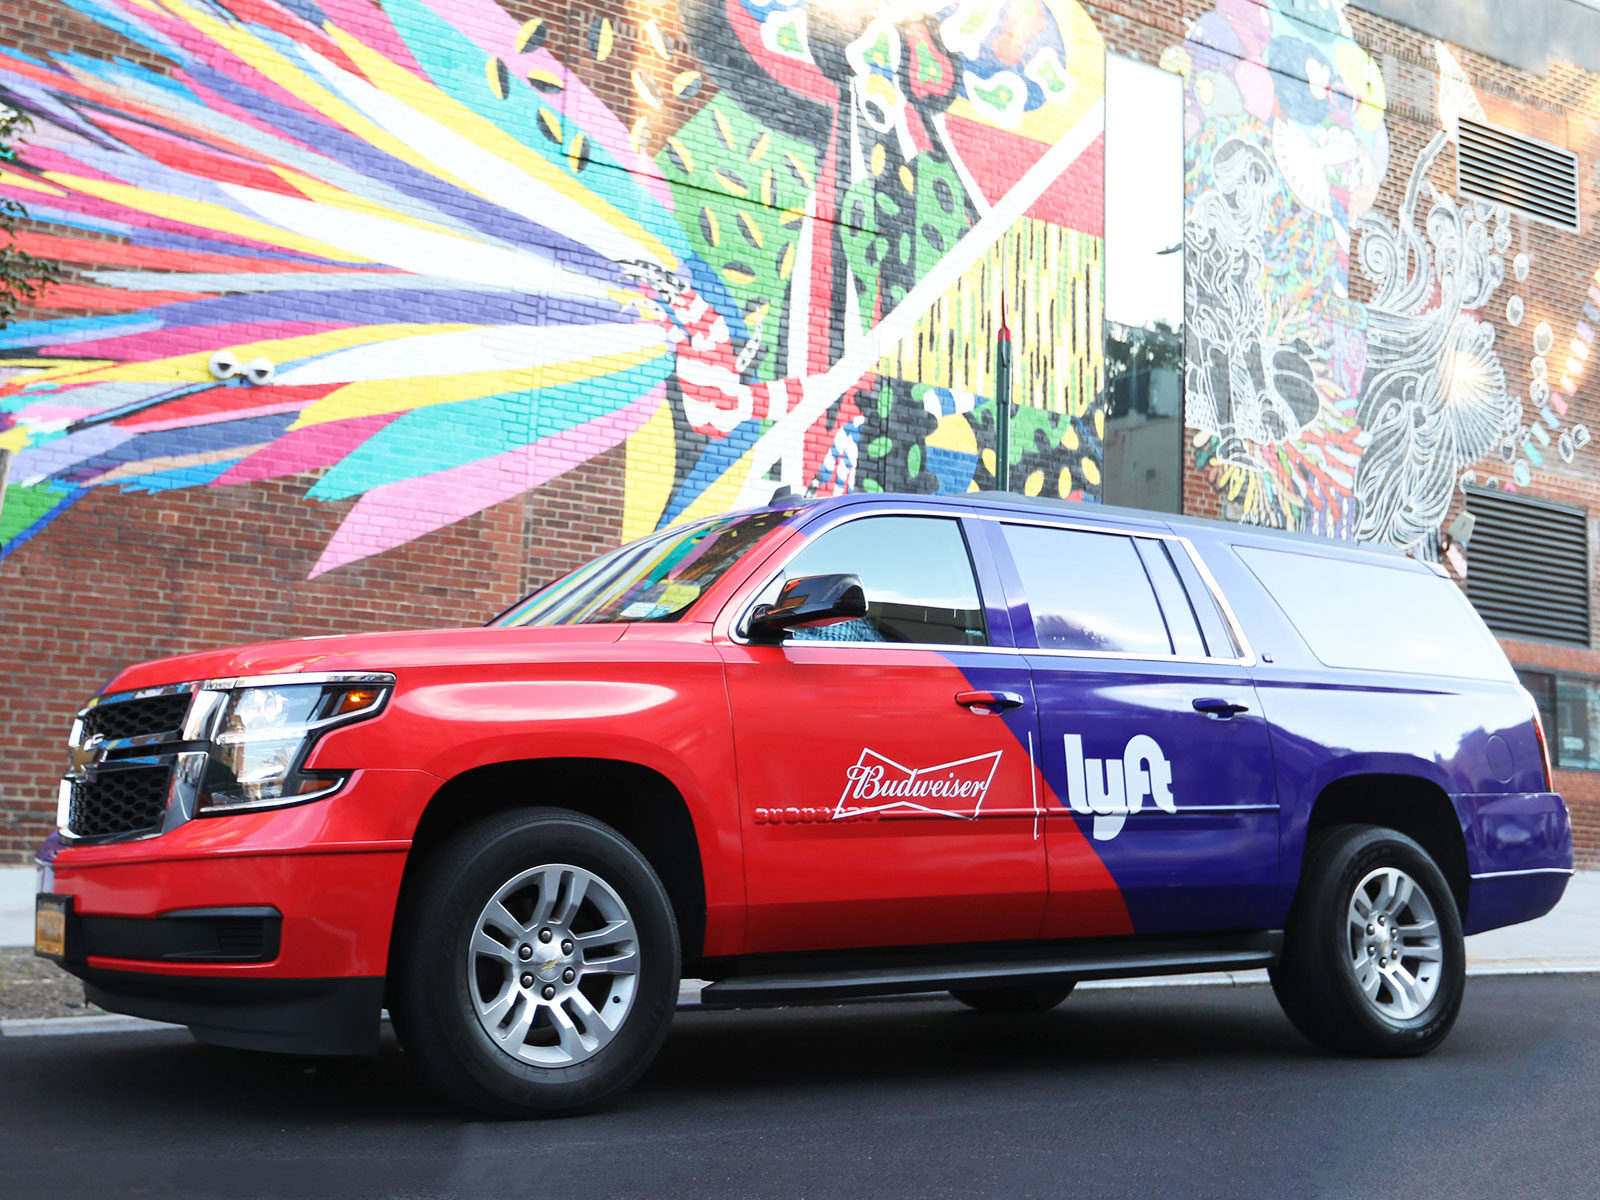 budweiser and lyft partnership to fight drunk driving